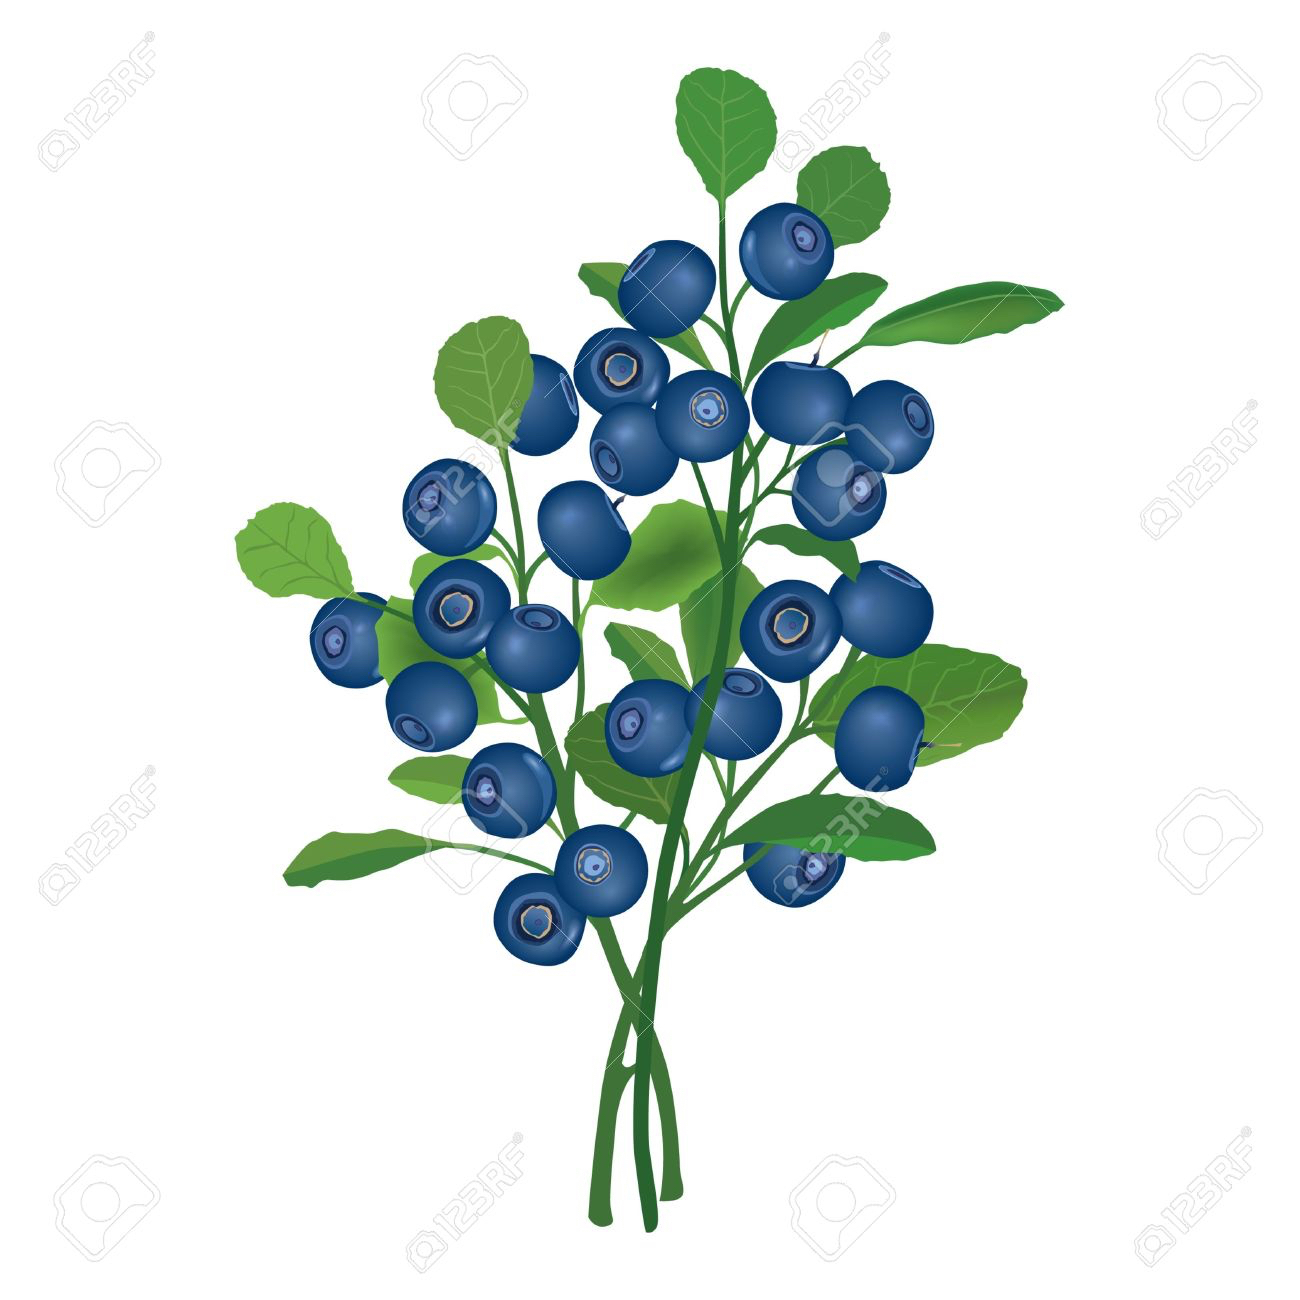 Bushes clipart berry. Bush drawing free download